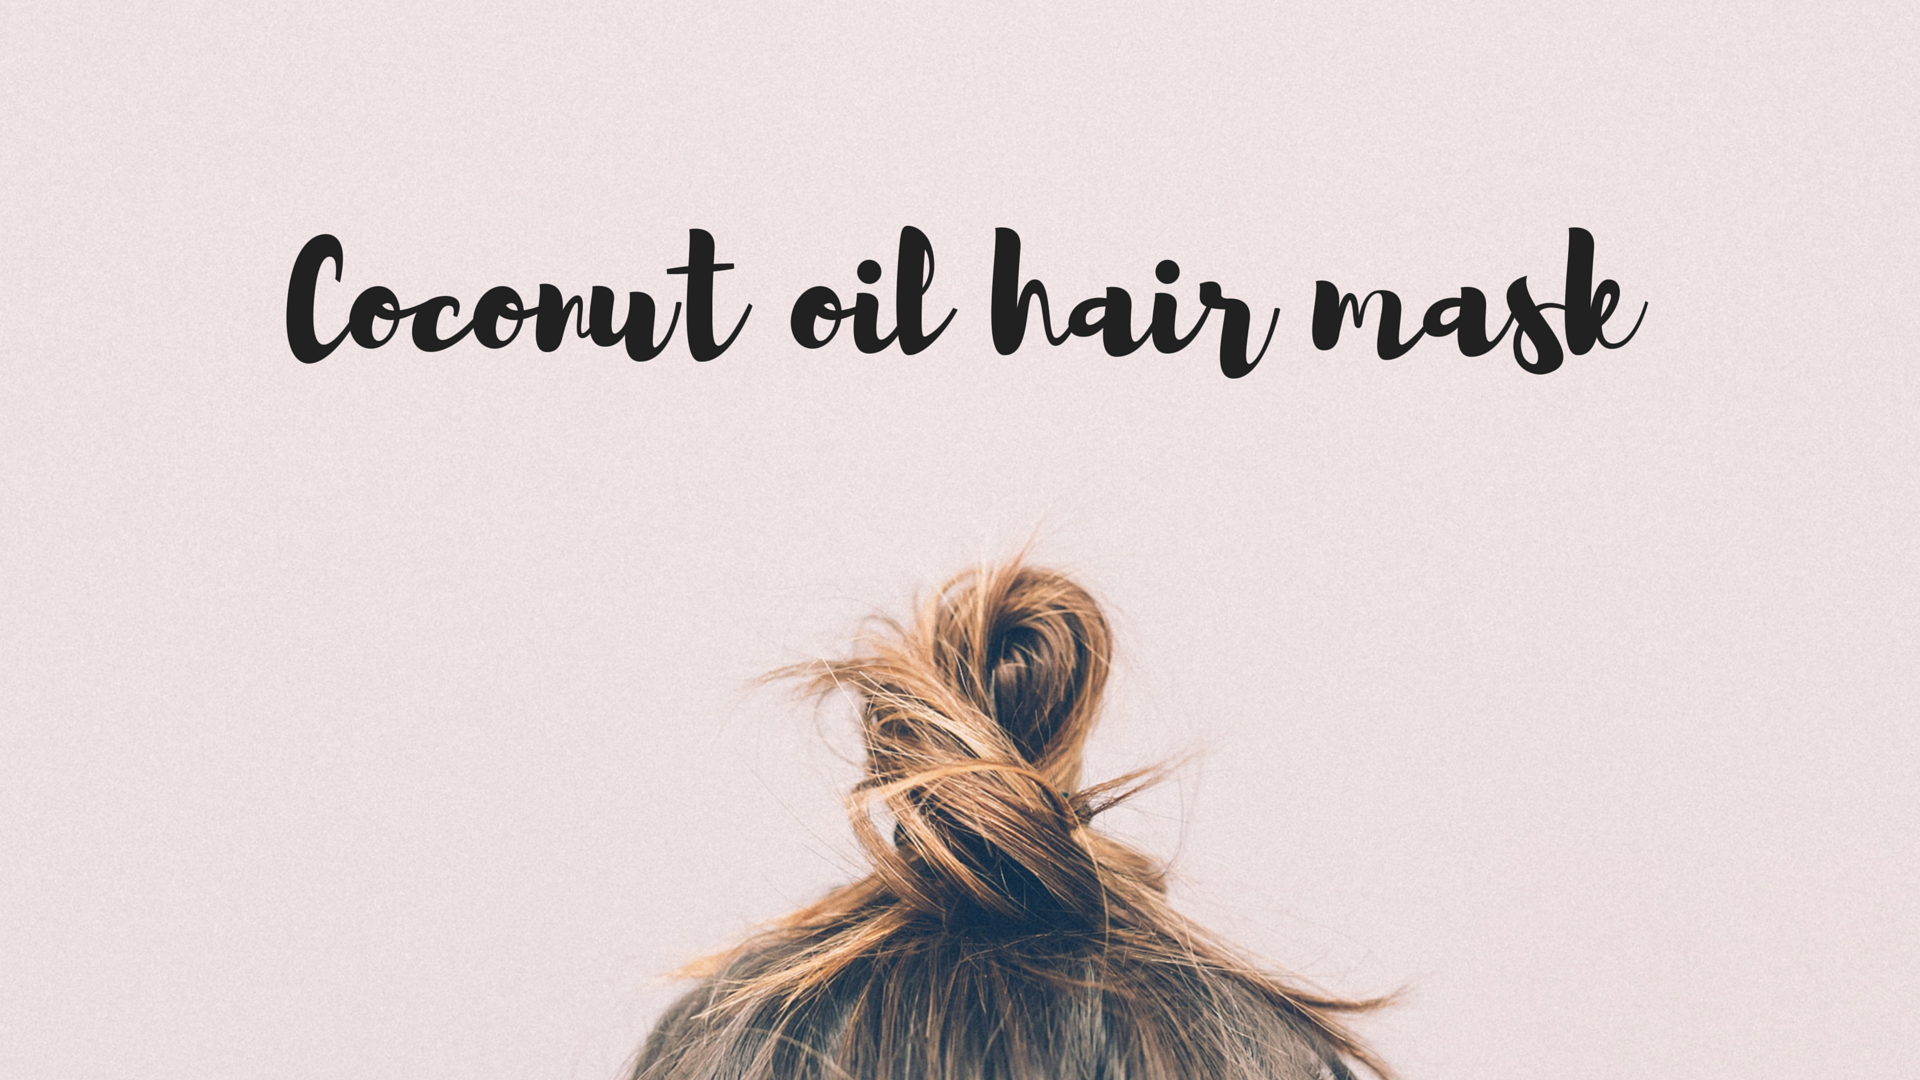 Coconut oil hair mask